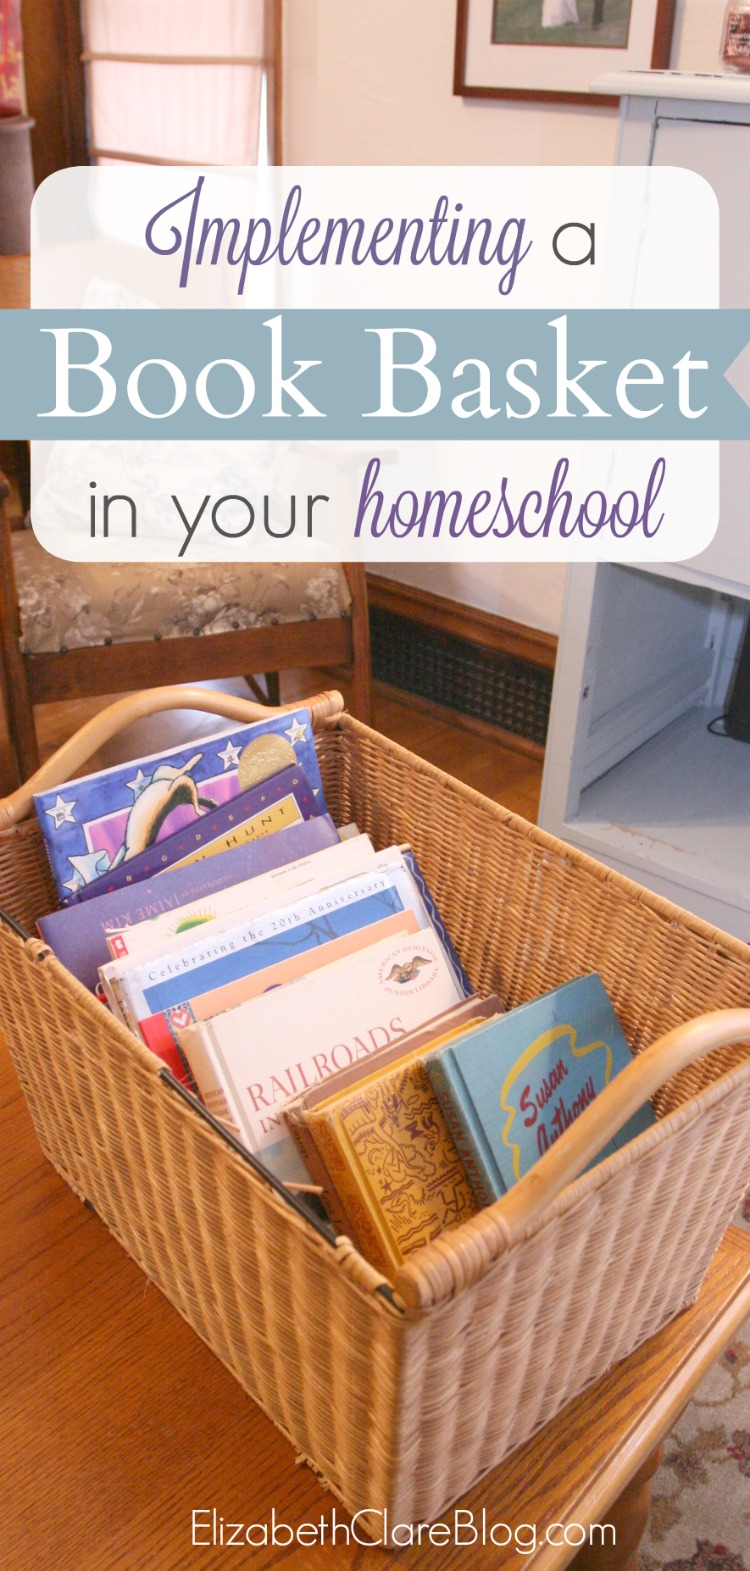 Ideas for how to choose books for your book basket and making it work with library books and homeschool read alouds in your family!